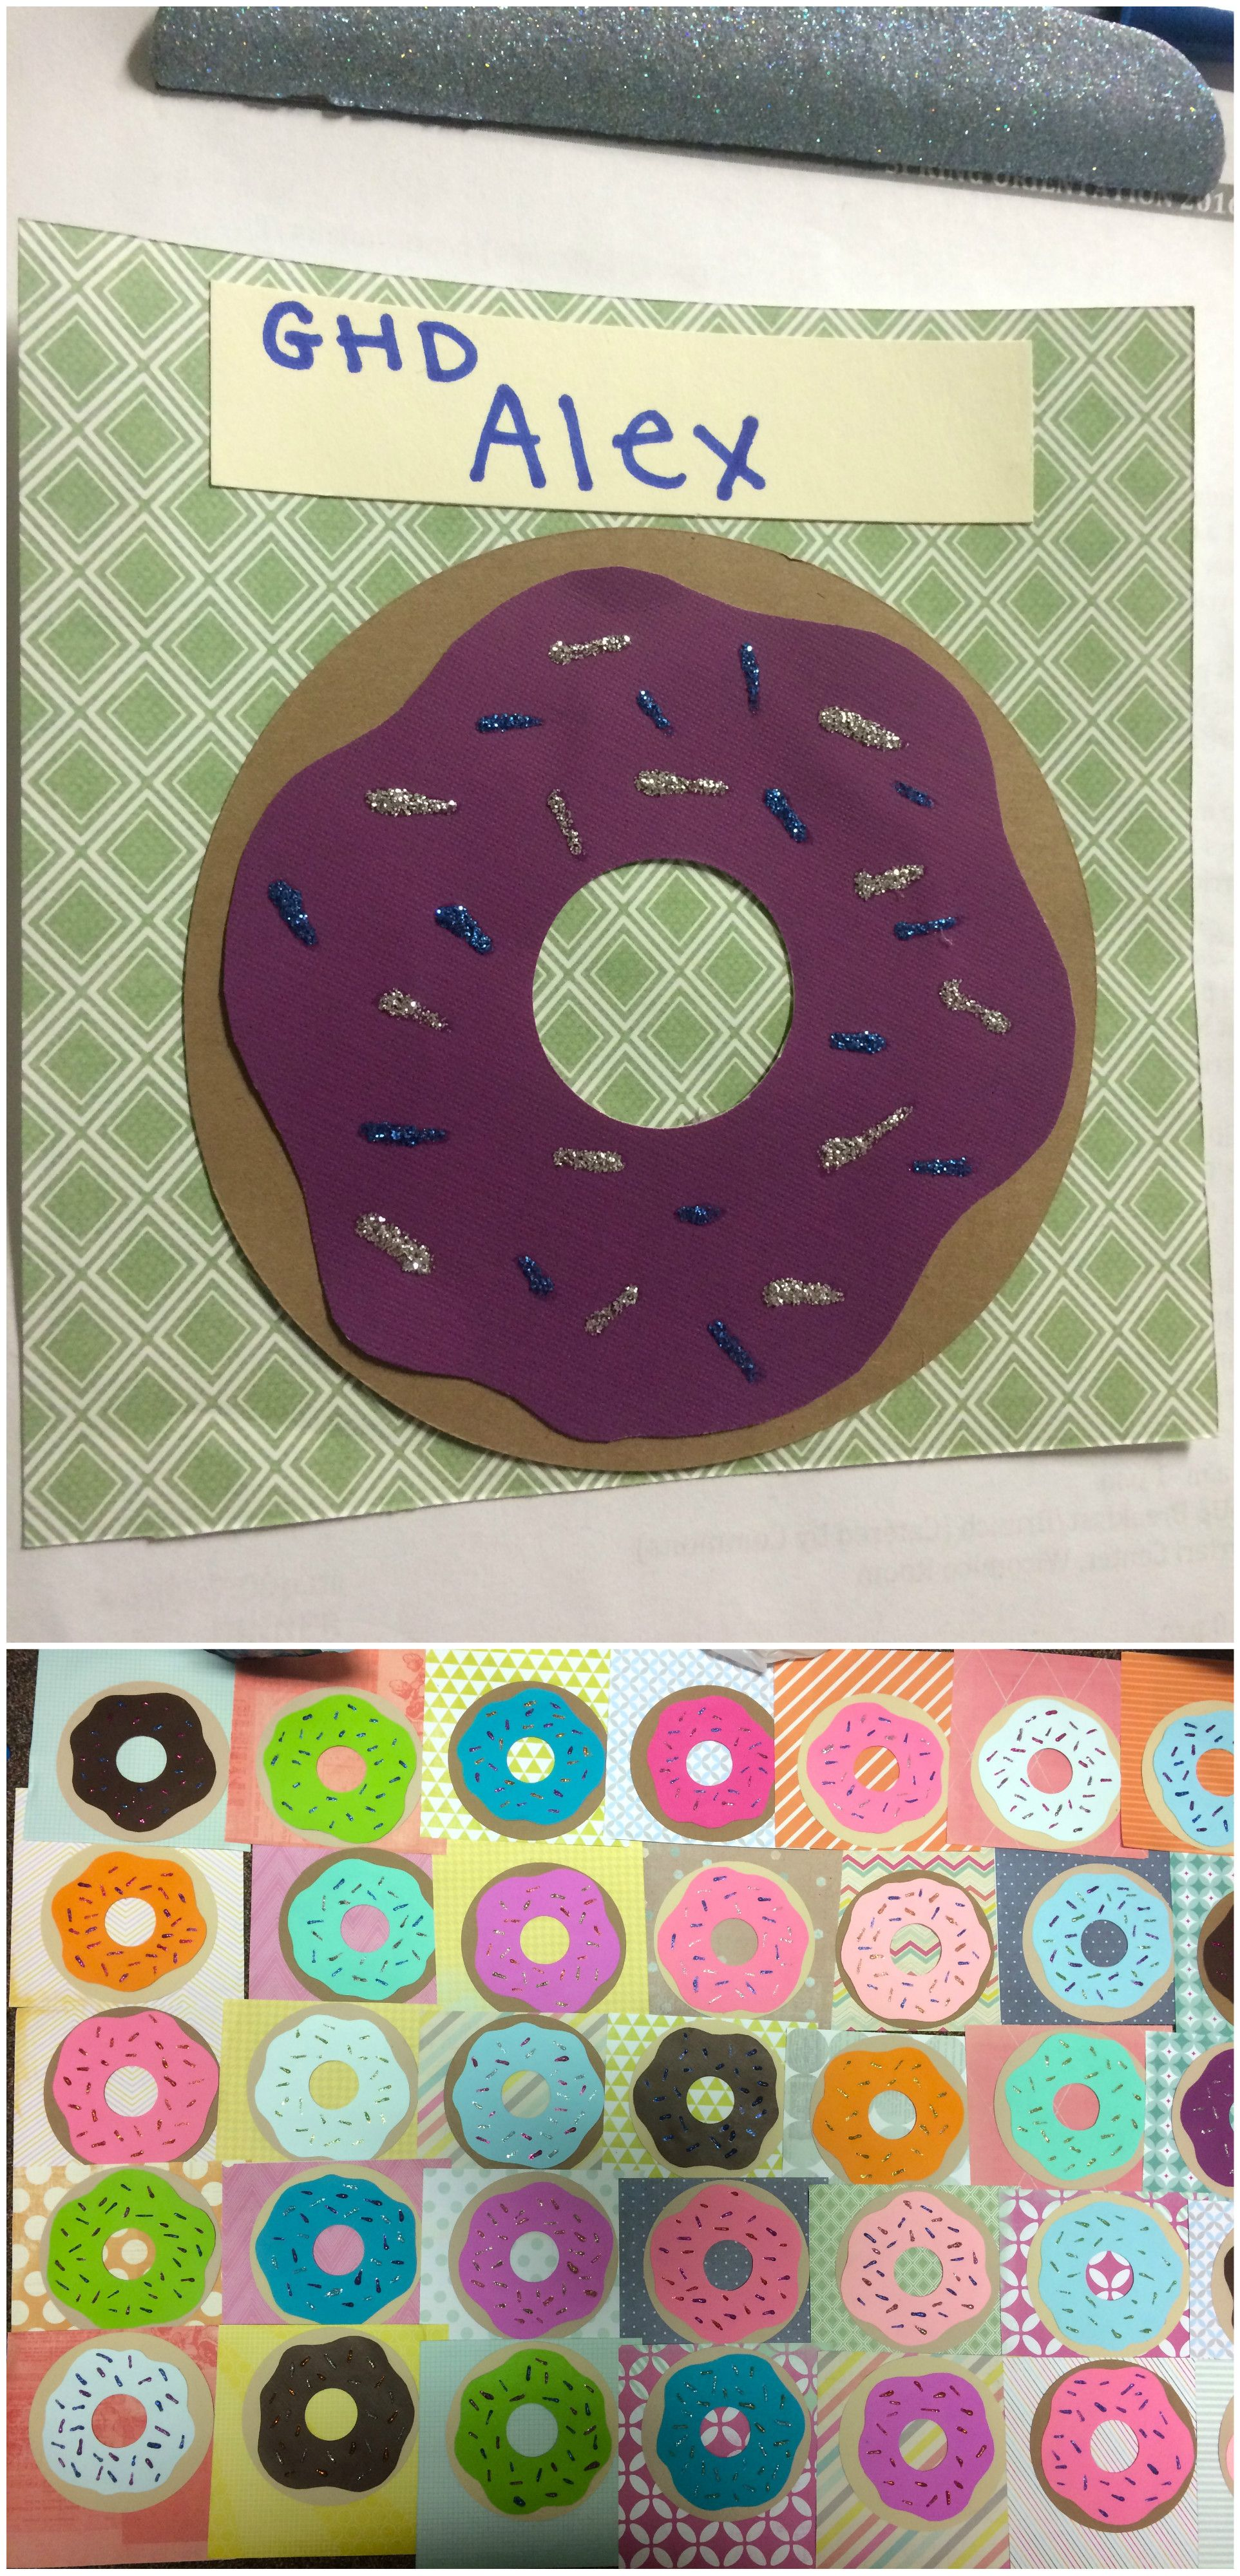 RA CA res life door decs name tags donuts donut : door decs templates - pezcame.com